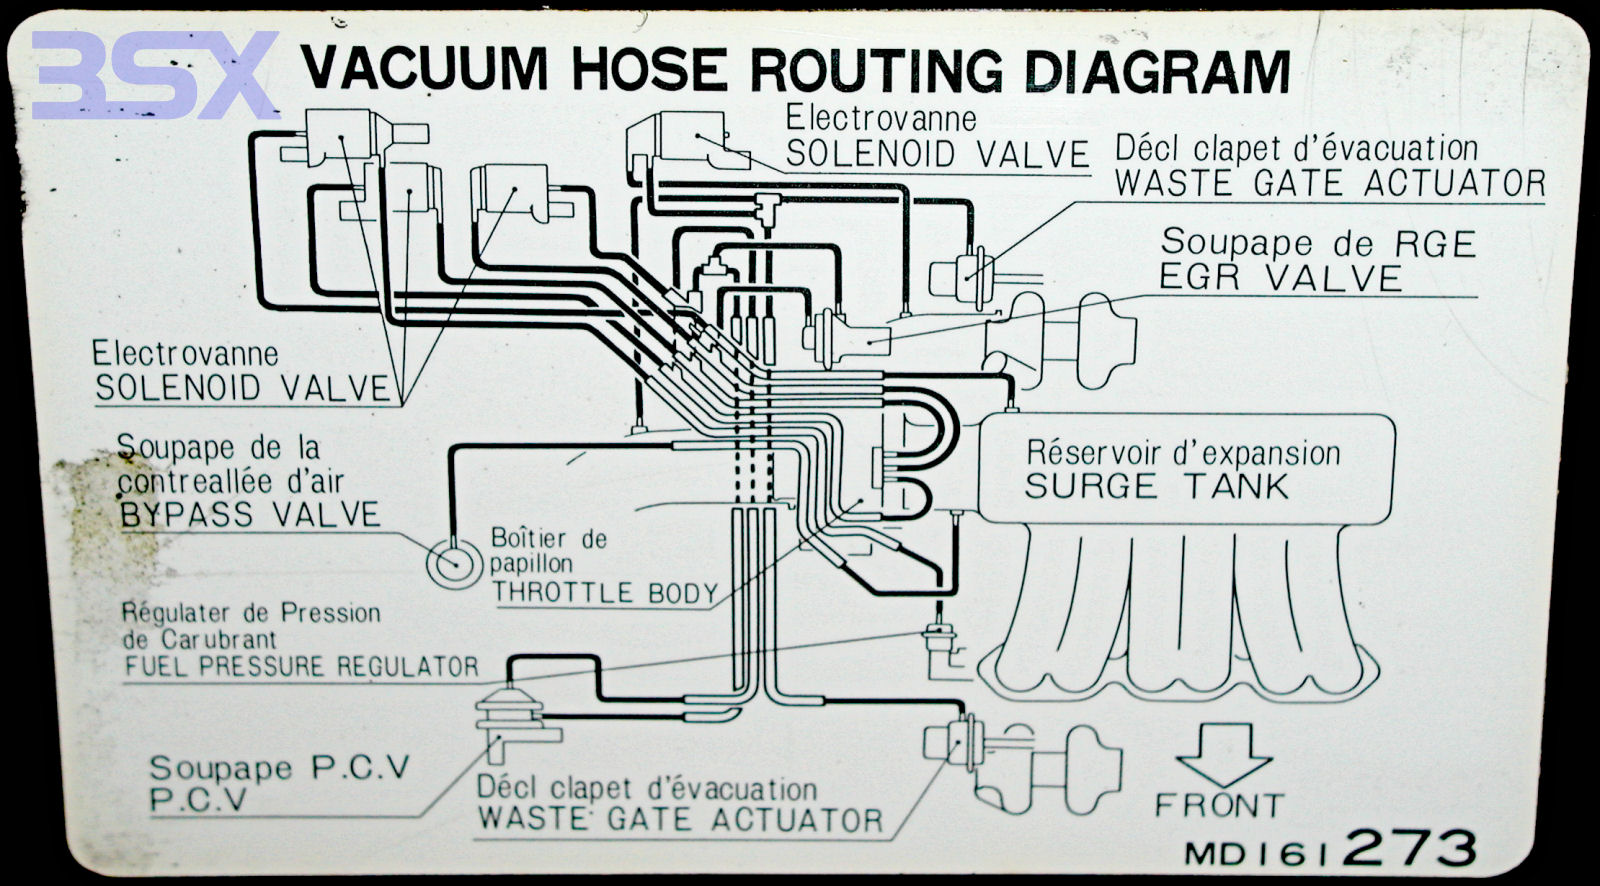 Vacuum Line Diagram Simple Wiring 1983 Chevy K10 Transmission Car Engine Basics Repair Leak Leaks On A 1964 Thunderbird